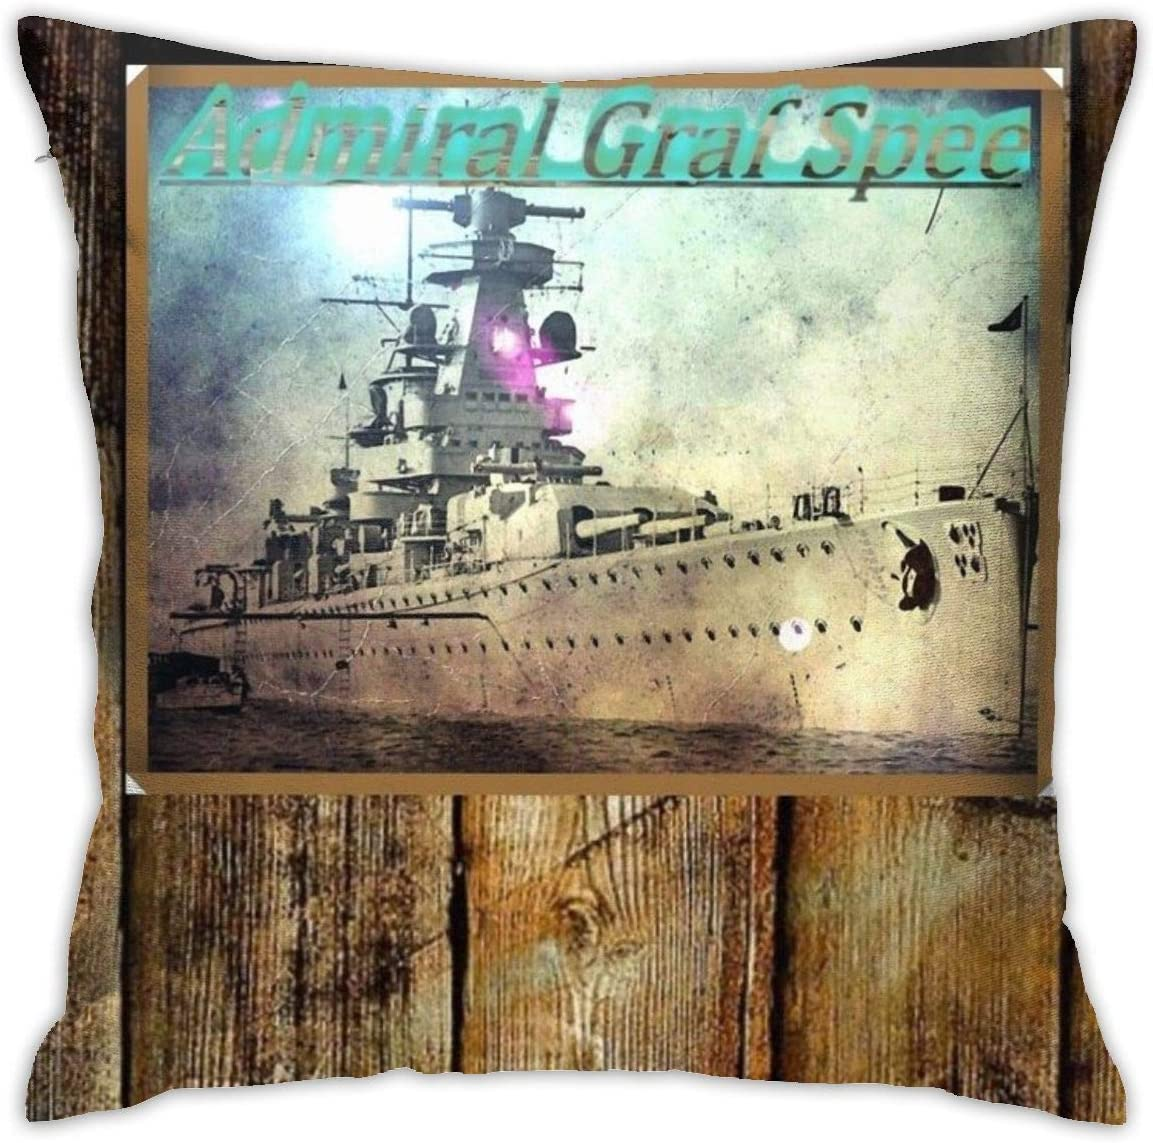 Lhgs5sv Admiral GRAF Spee Both Sides Throw Pillow Covers Cotton Home Decor Sofa Square Cushion Cover Pillow Case 18x18 in